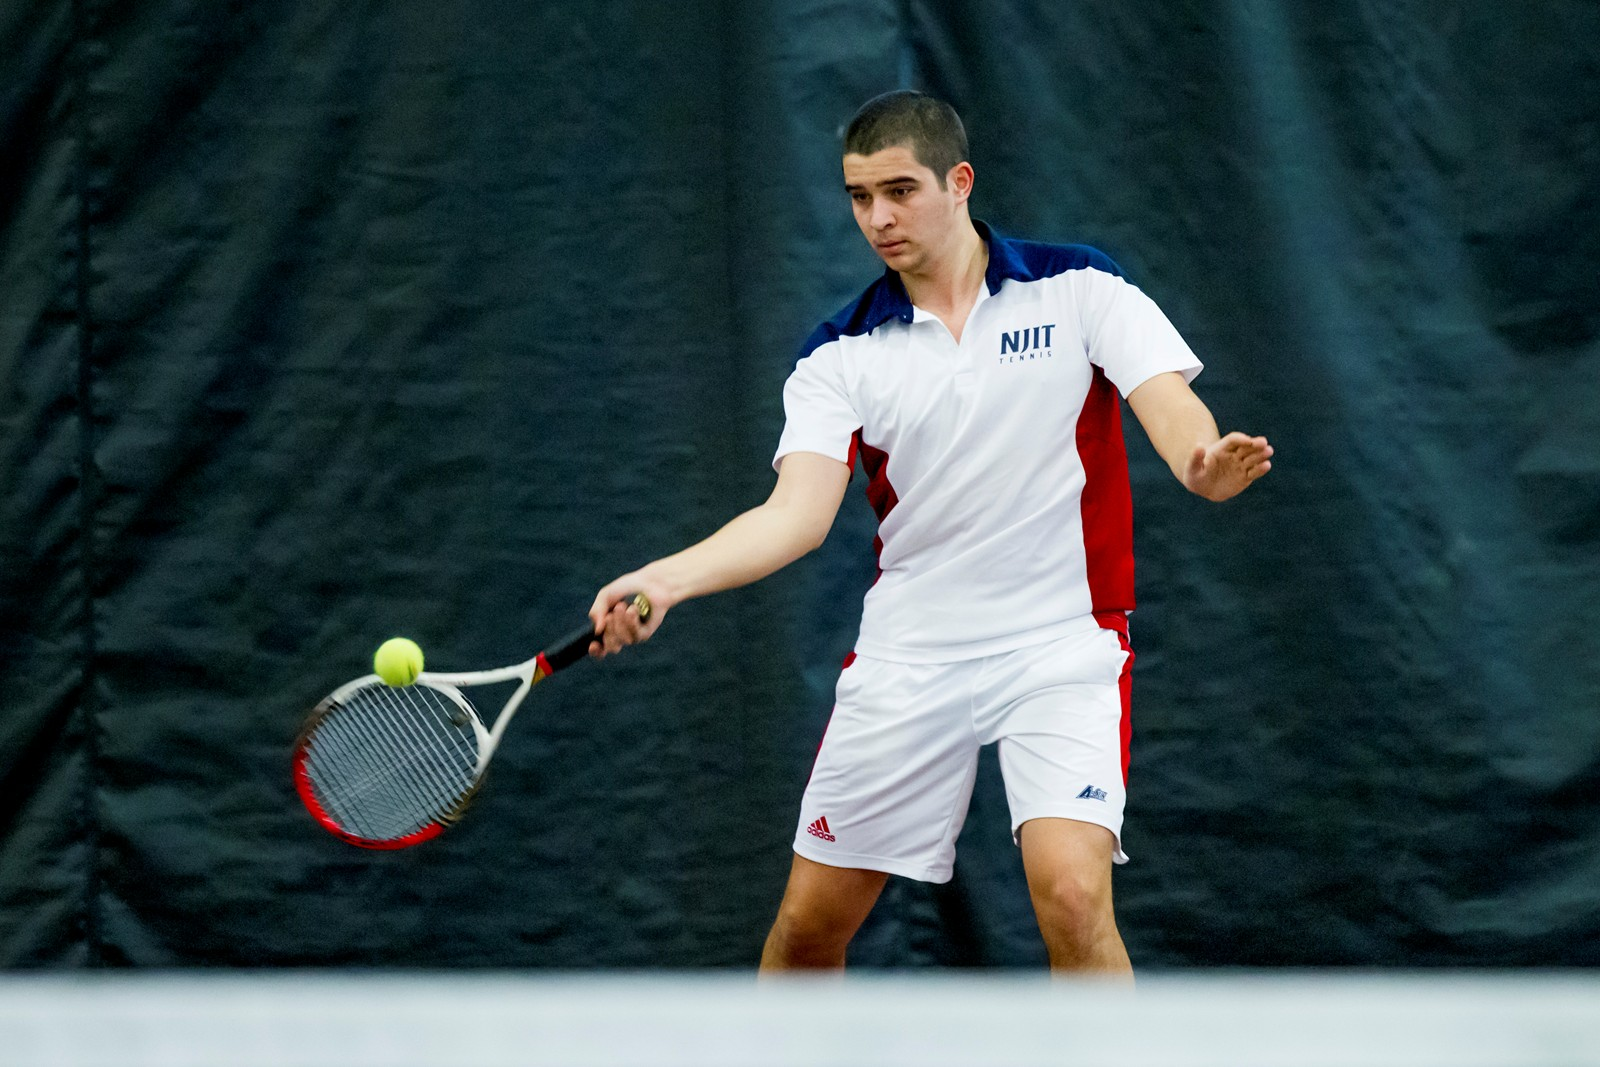 New jersey institute of technology men 39 s tennis defeats stony brook 4 3 for first win of 2016 Stony brook swimming pool hours